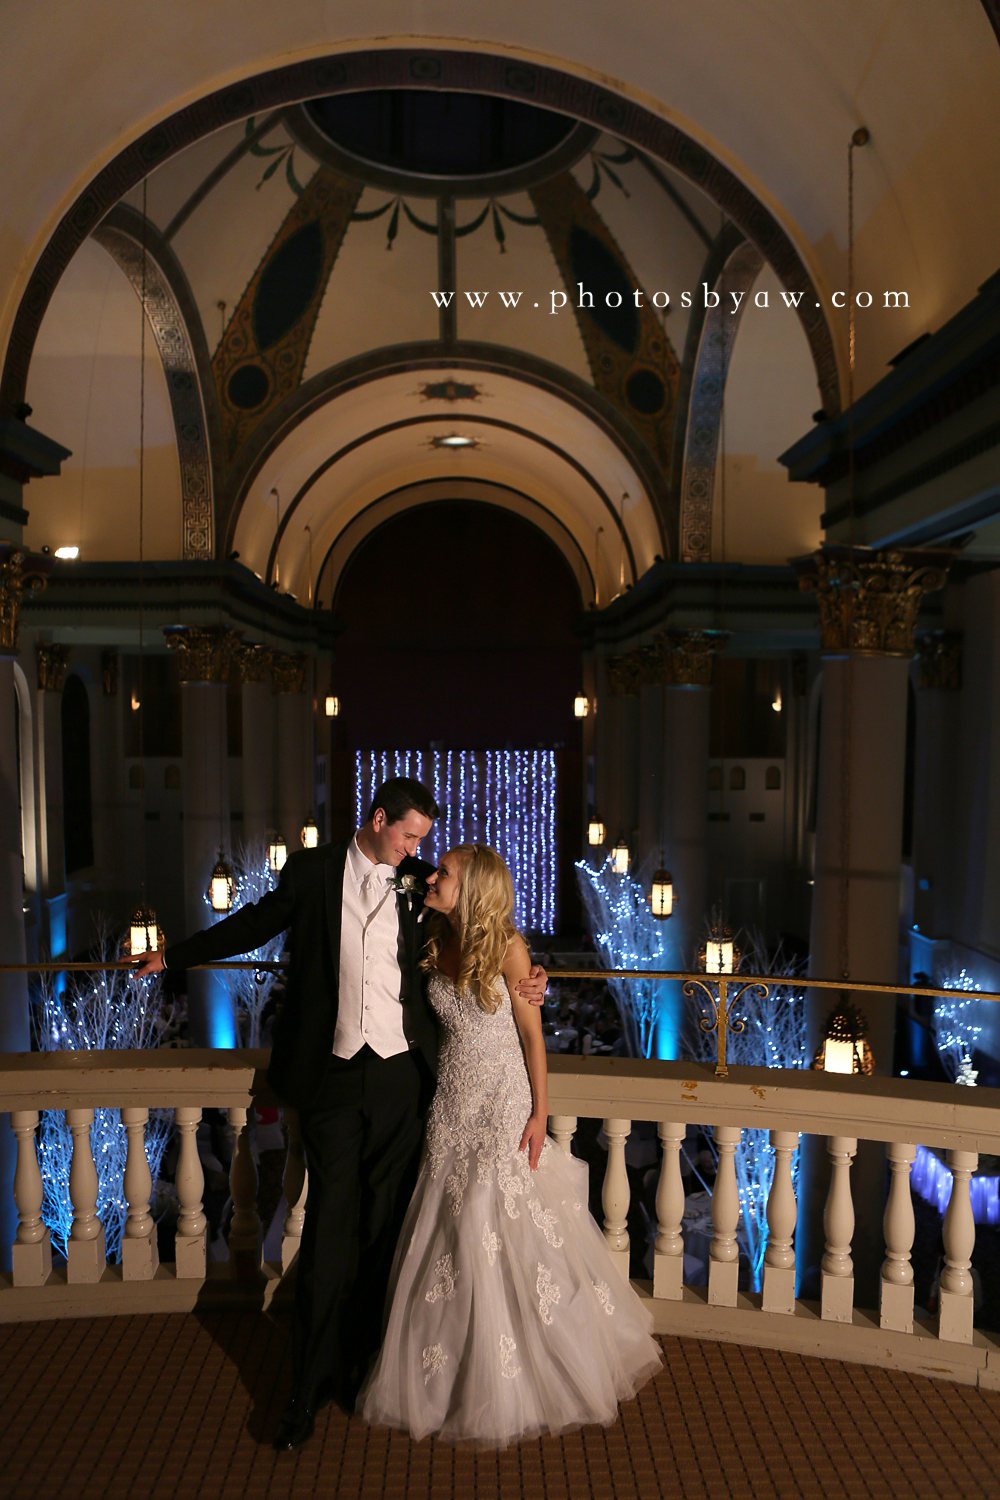 Pittsburgh winter wedding courtney matt photos by amanda wilson grand hall priory winter wedding entertainmentunlimitedpittsburgh pittsburgh wedding dj junglespirit Choice Image